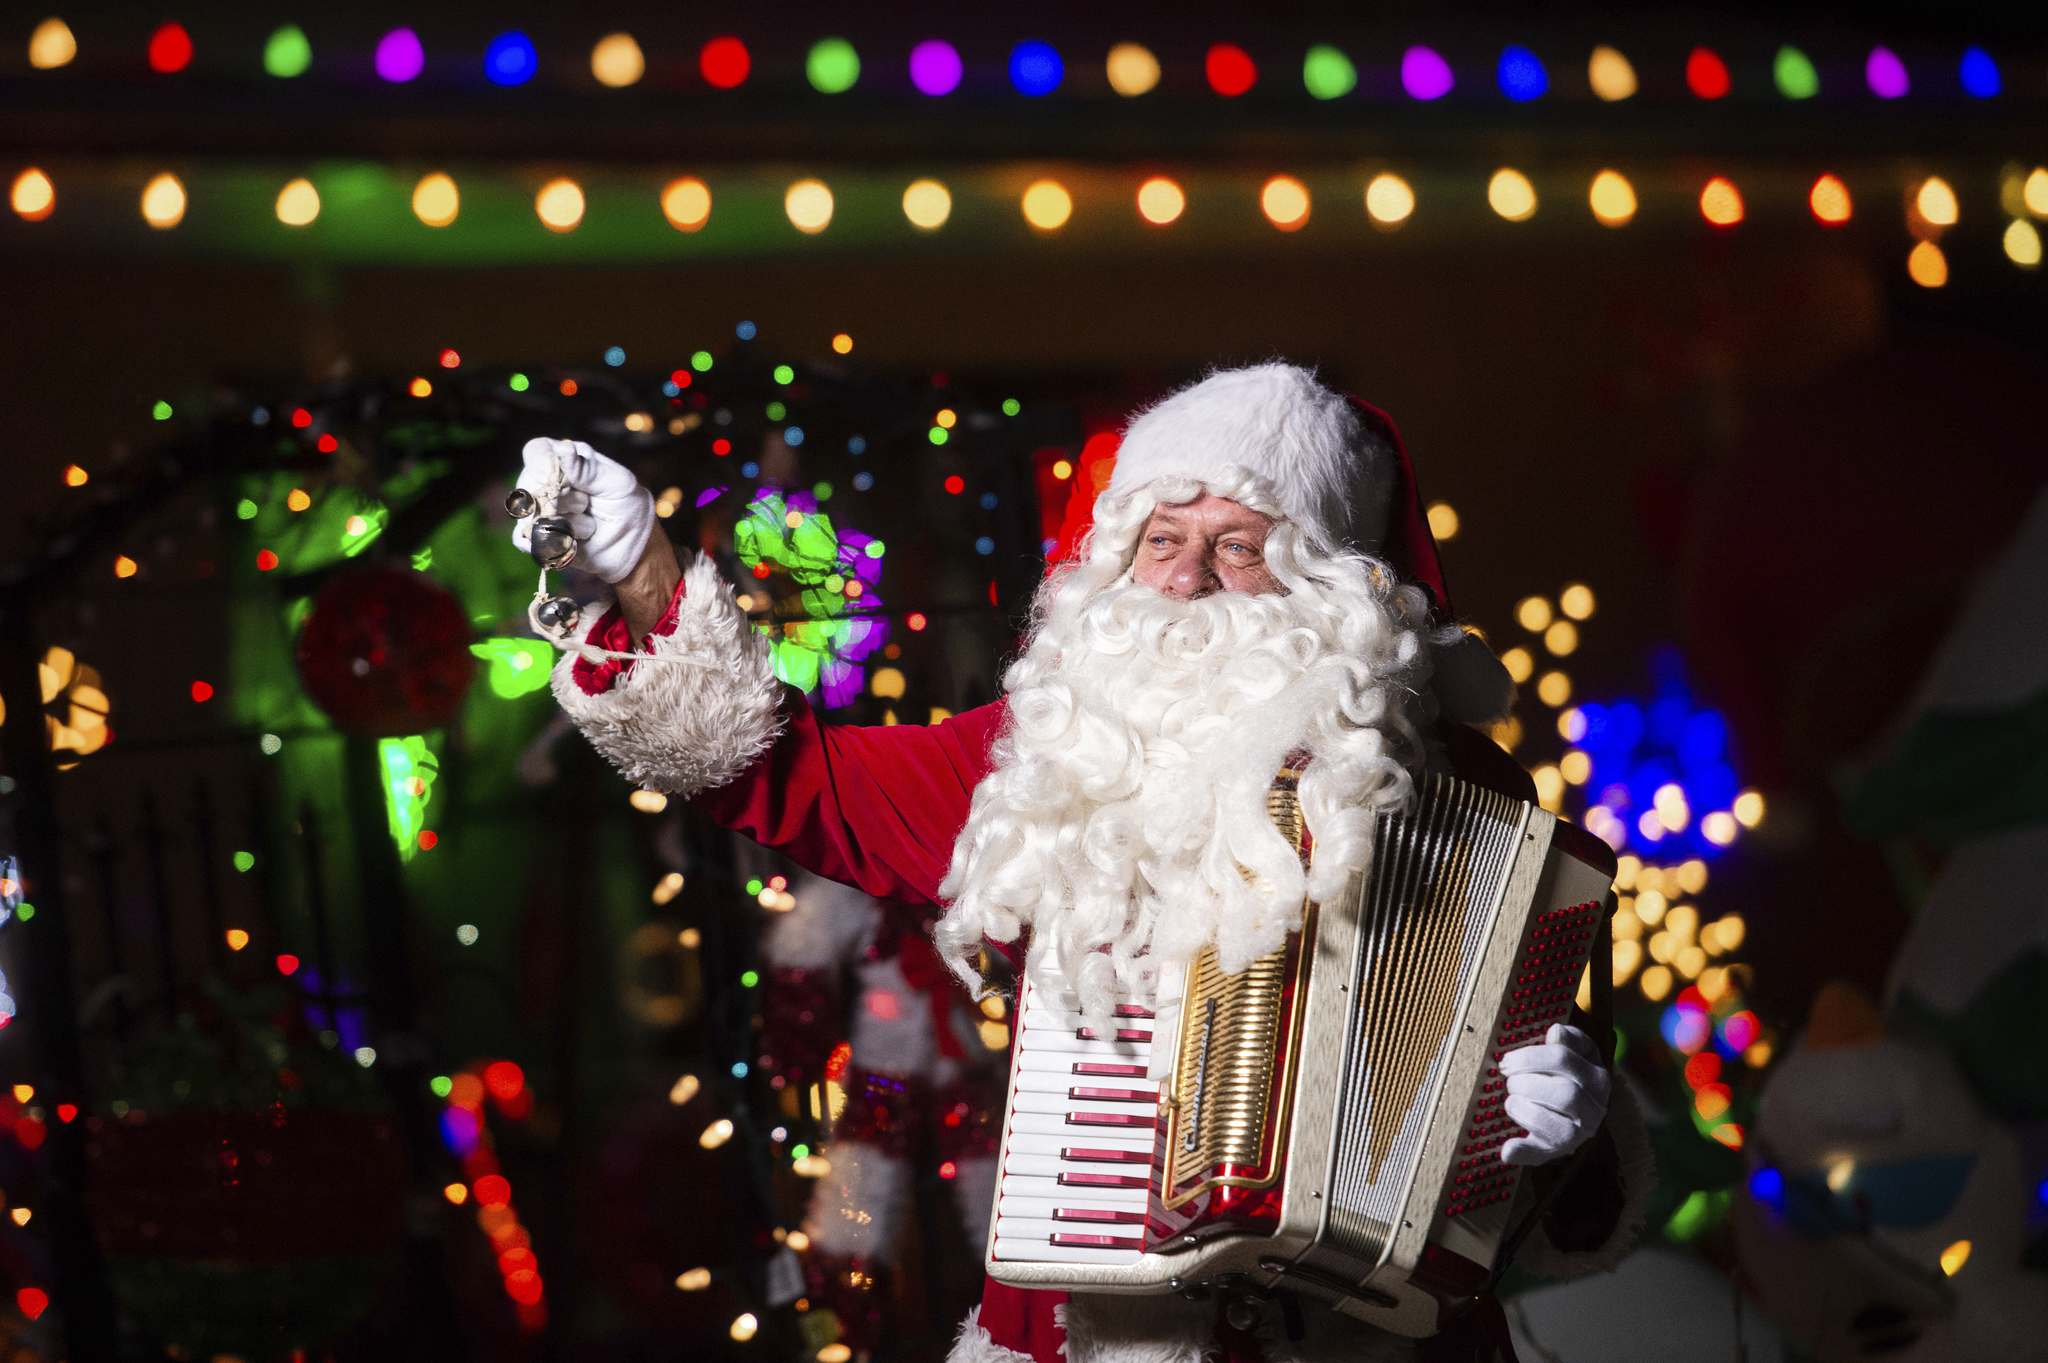 Stan Bedernjak spreads holiday cheer with his accordion in front of a brightly decorated house on Lincrest Road last week.